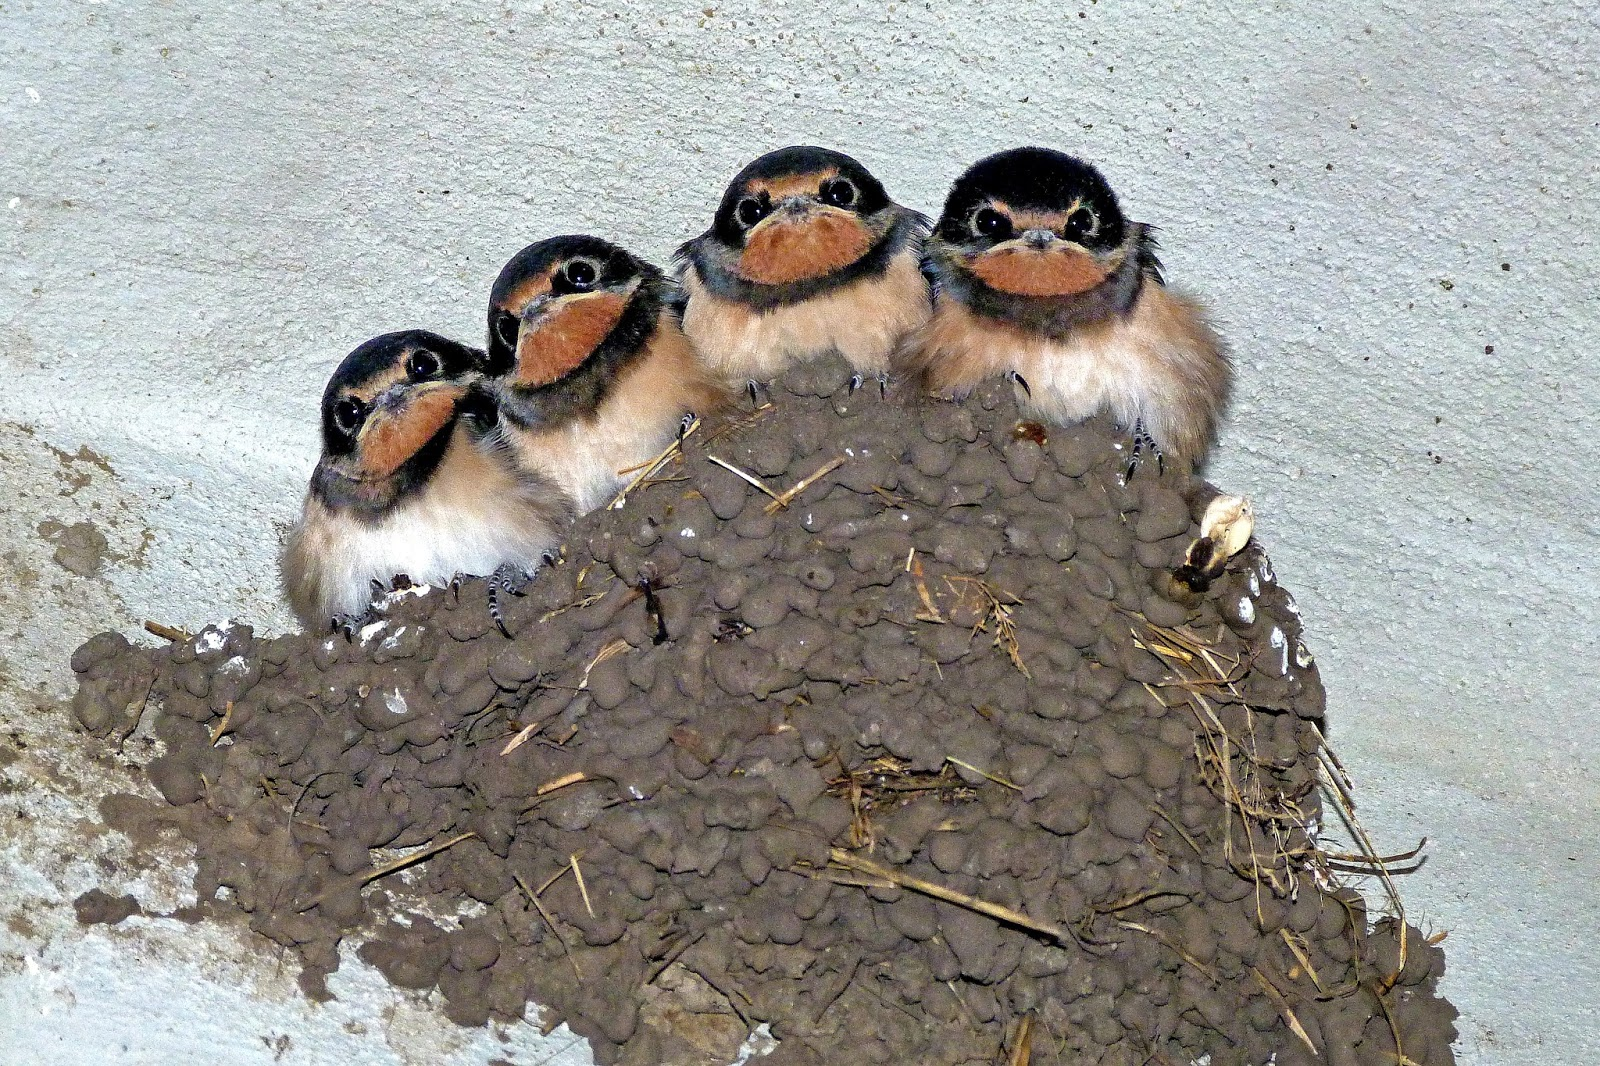 Swallow birds in their nests.